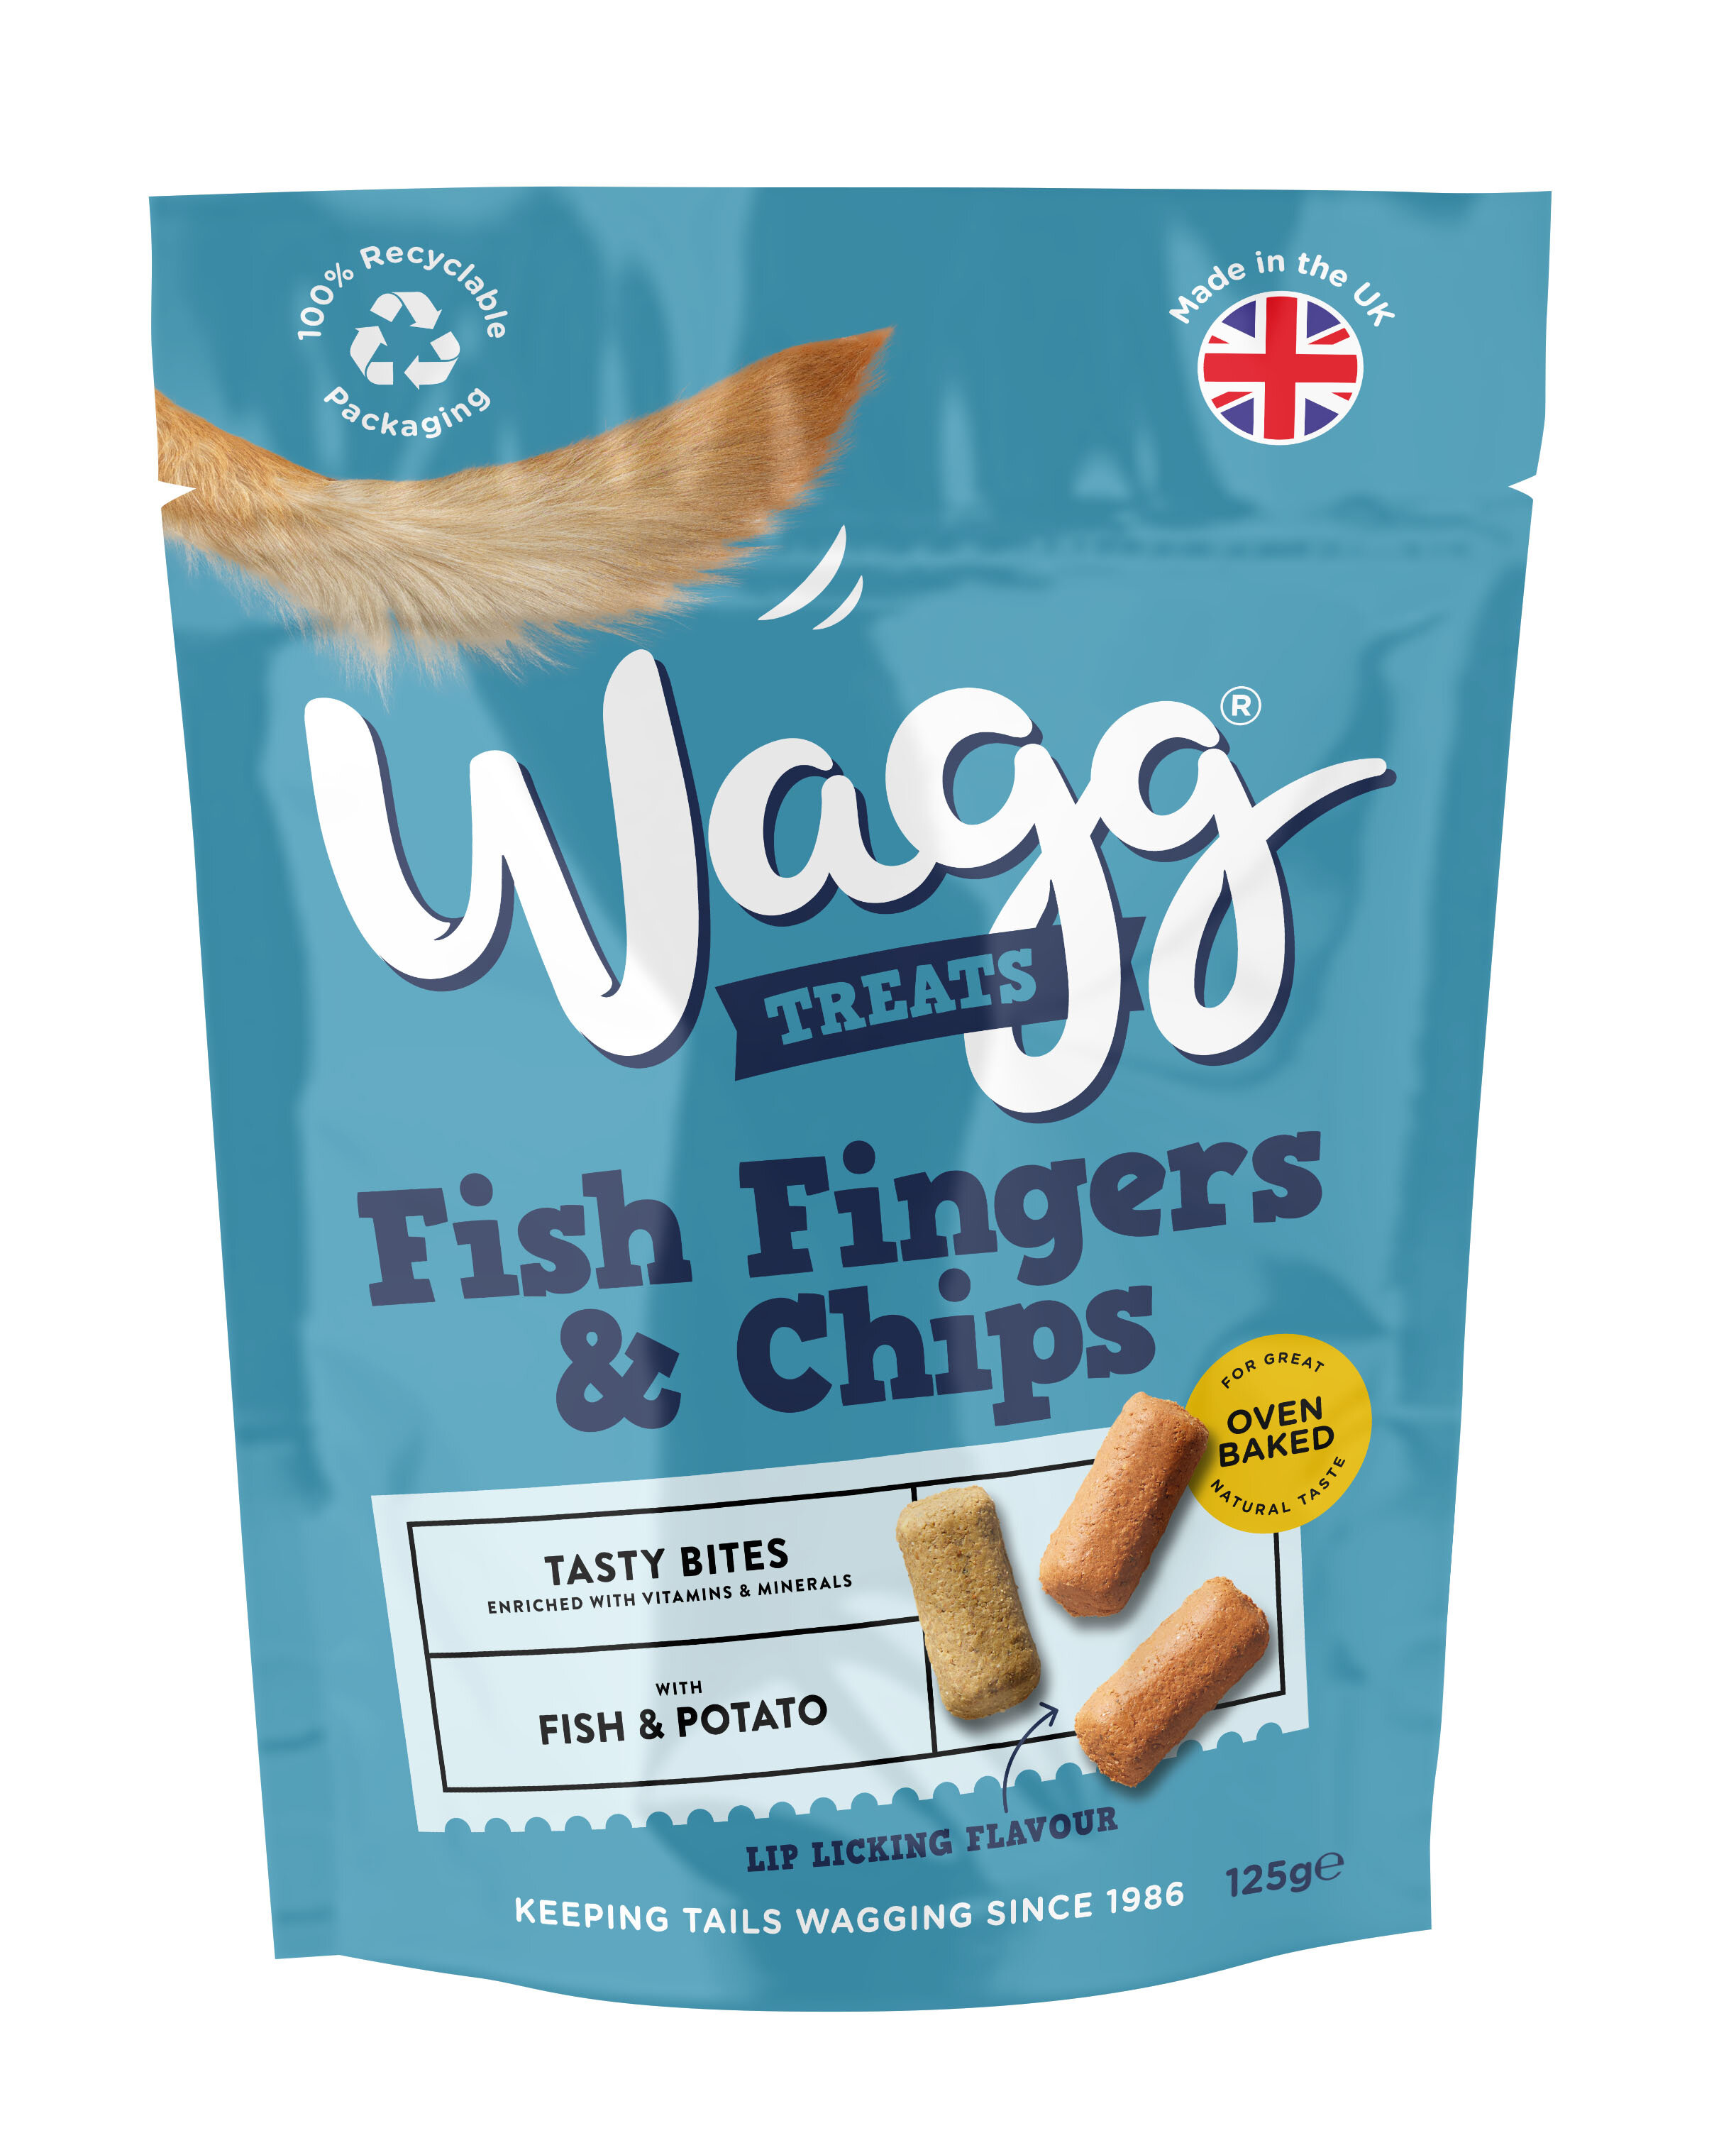 Wagg Dog Treats Fish Fingers & Chips 125g x 7